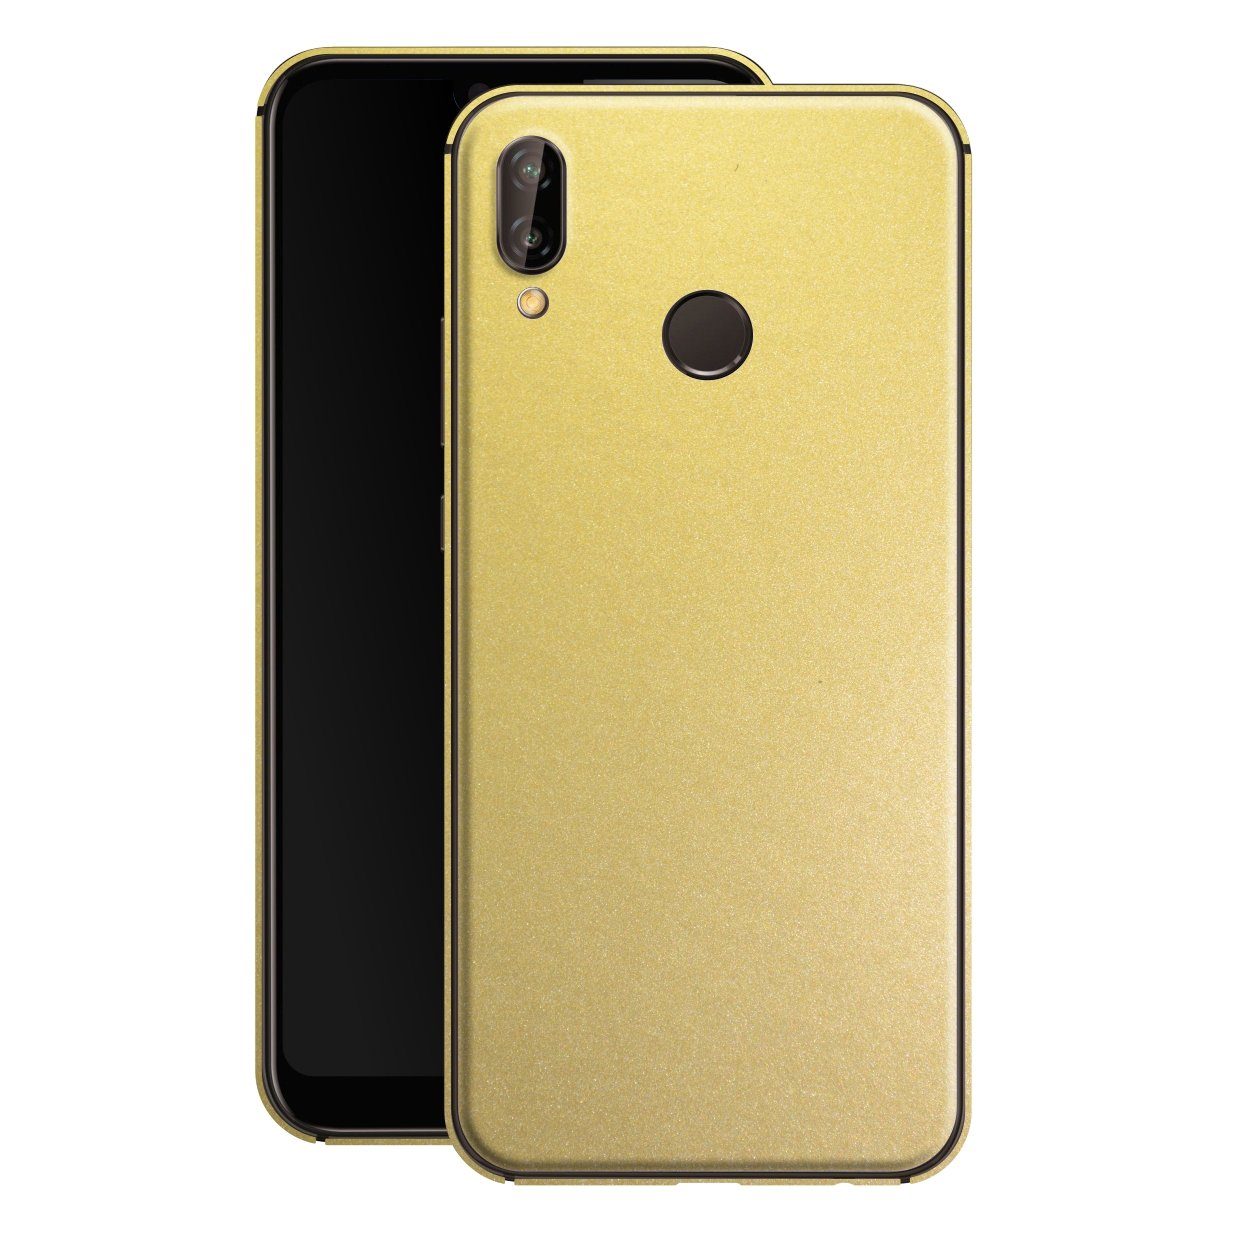 Huawei P20 LITE Gold Matt Metallic Skin, Decal, Wrap, Protector, Cover by EasySkinz | EasySkinz.com